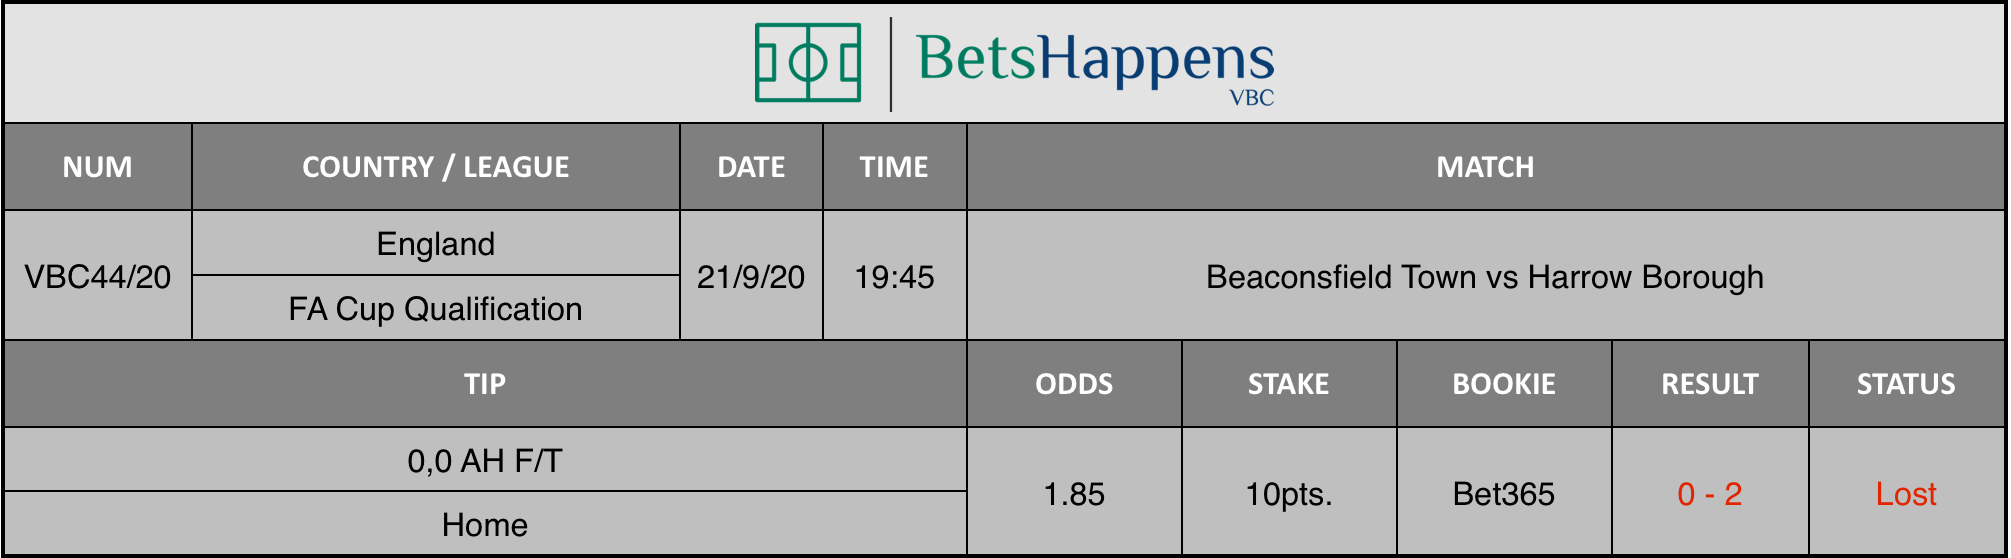 Results of our tip for the Beaconsfield Town vs Harrow Borough game where 0.0 AH F / T Home is recommended.